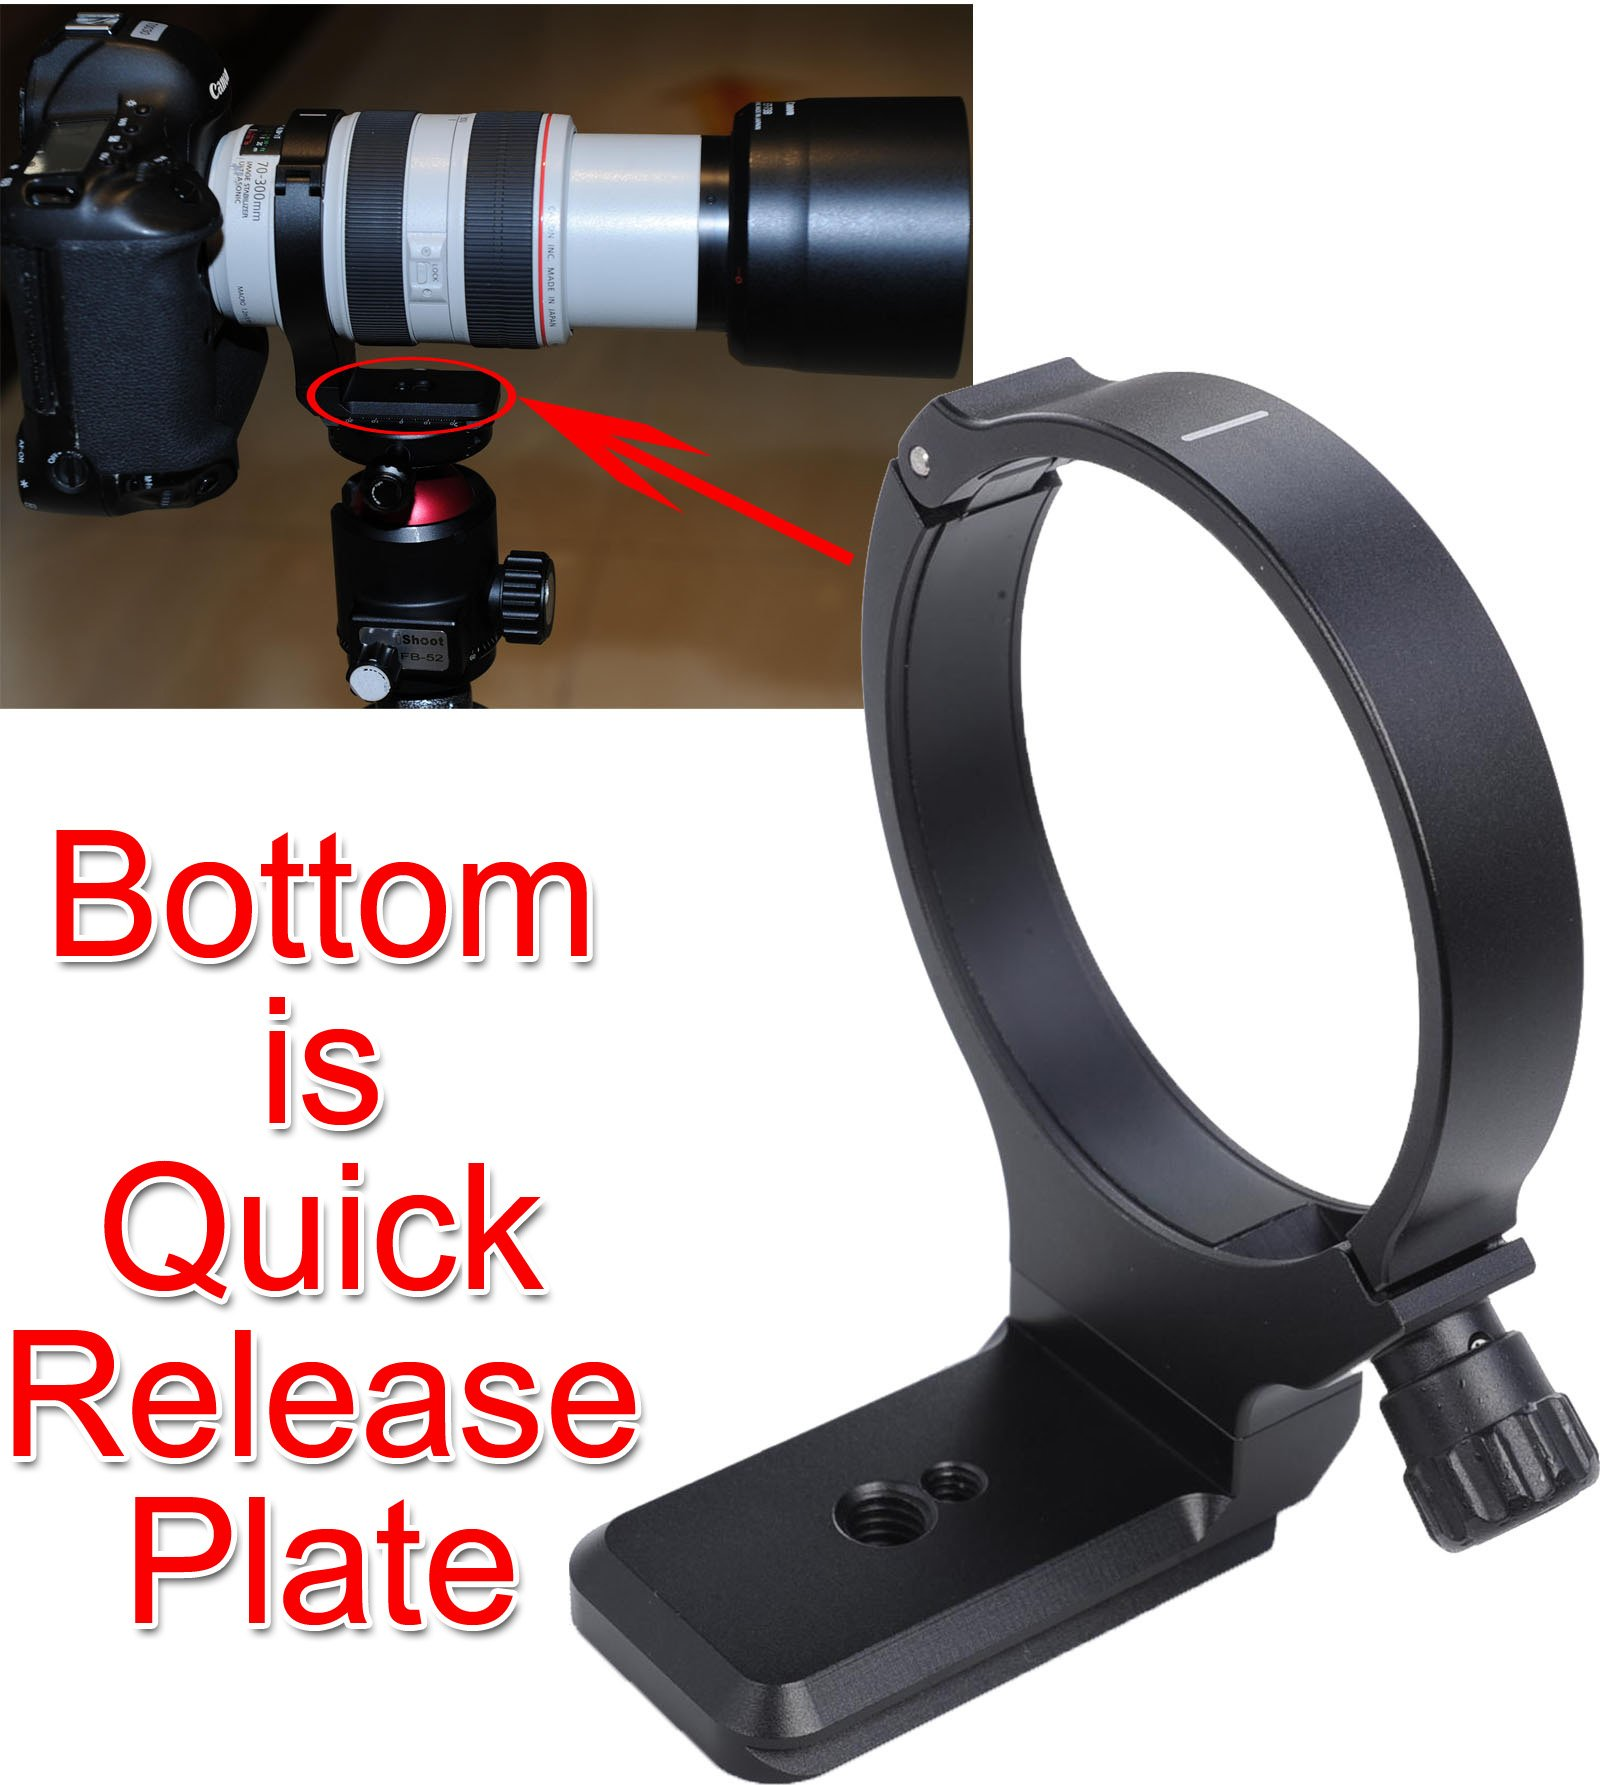 iShoot Latest Metal Lens Support Collar Tripod Mount Ring for Canon EF 28-300mm f/3.5-5.6L IS USM, Canon EF 70-300mm f/4-5.6L IS USM -Bottom is Camera Quick Release Plate